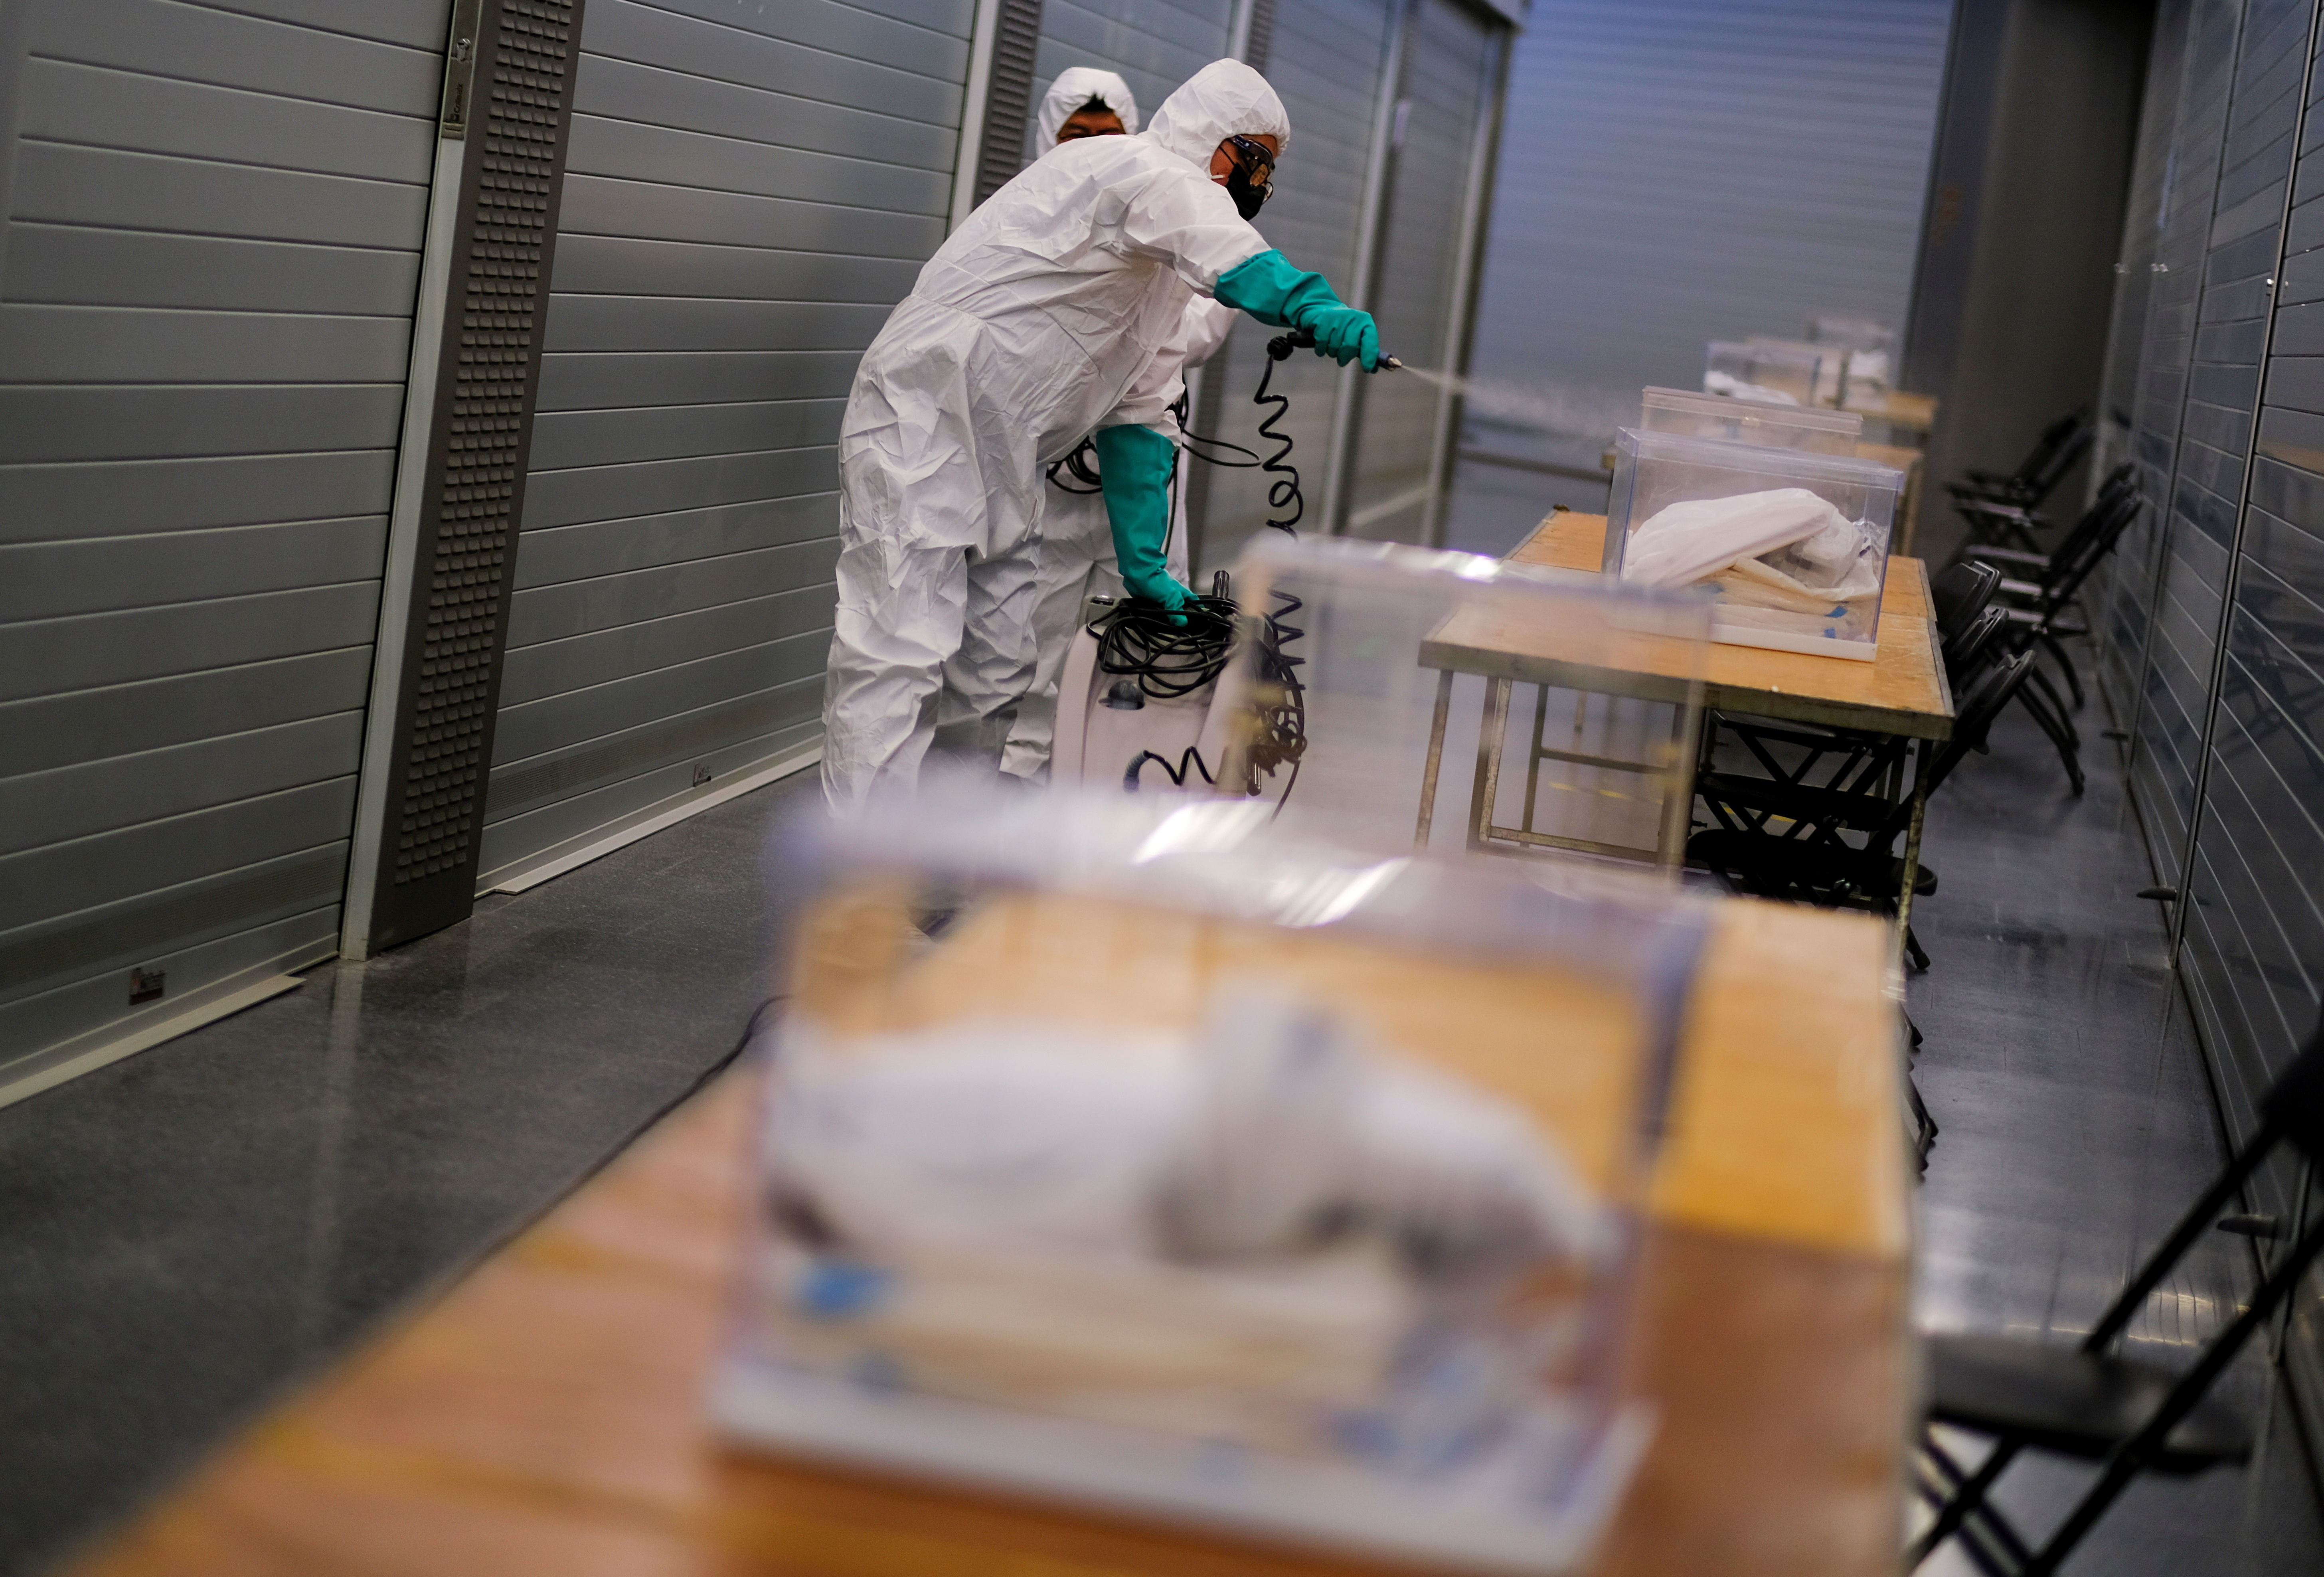 A worker uses disinfectant to clean ballot boxes containing personal protective equipment (PPE) supplies at Sant Antoni Market, which will be a polling station for the February 14th regional election, during the coronavirus disease (COVID-19) outbreak in Barcelona, Spain February 13, 2021.  REUTERS/Nacho Doce